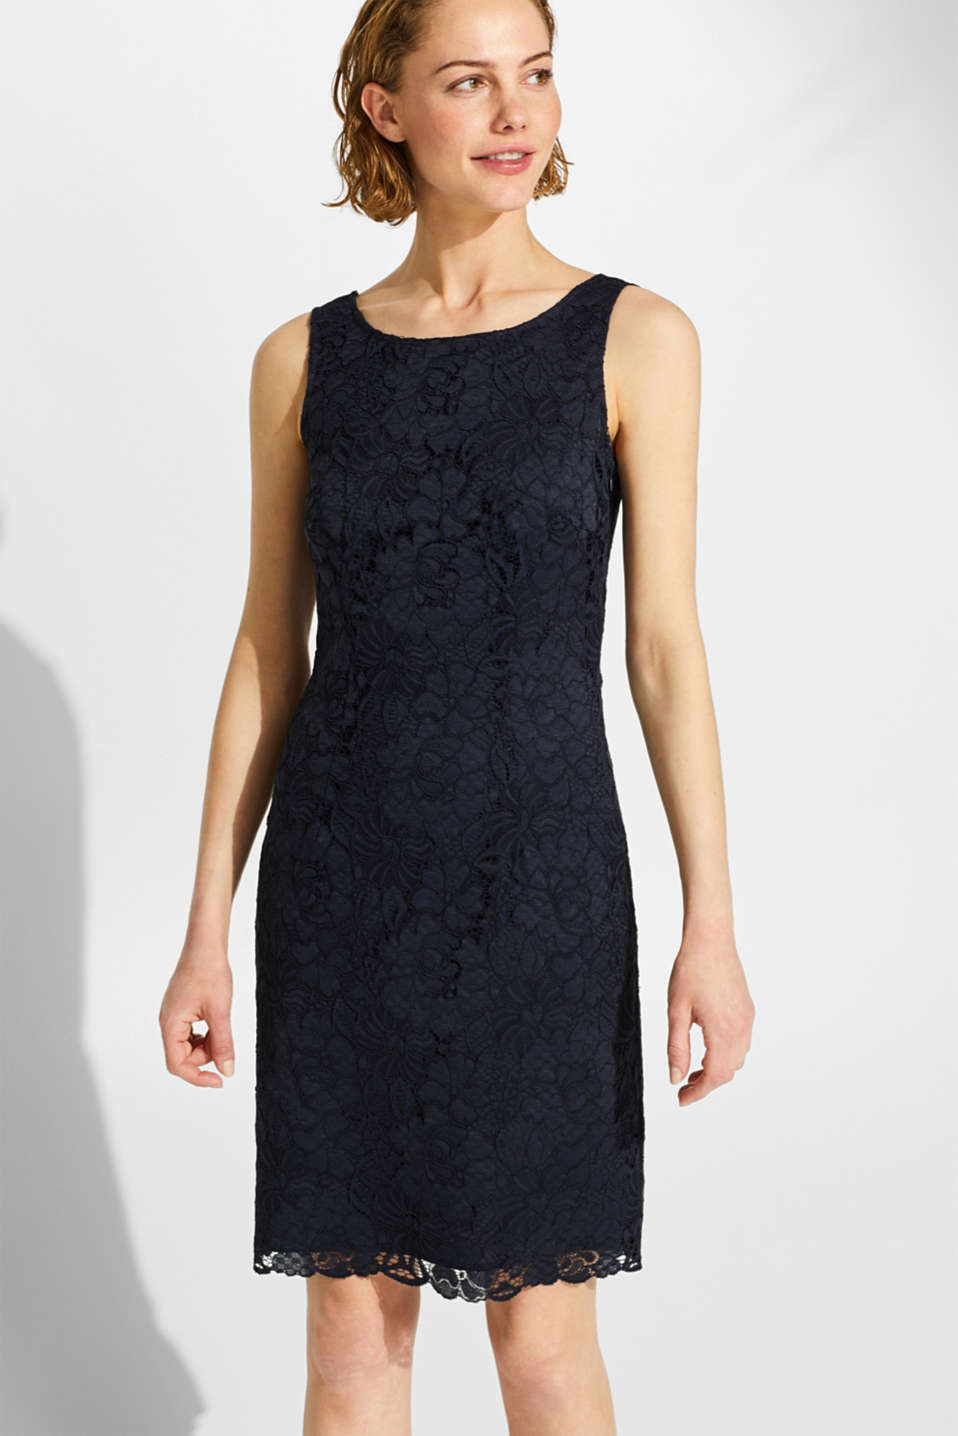 Esprit - Sheath dress in lace with a cut-out